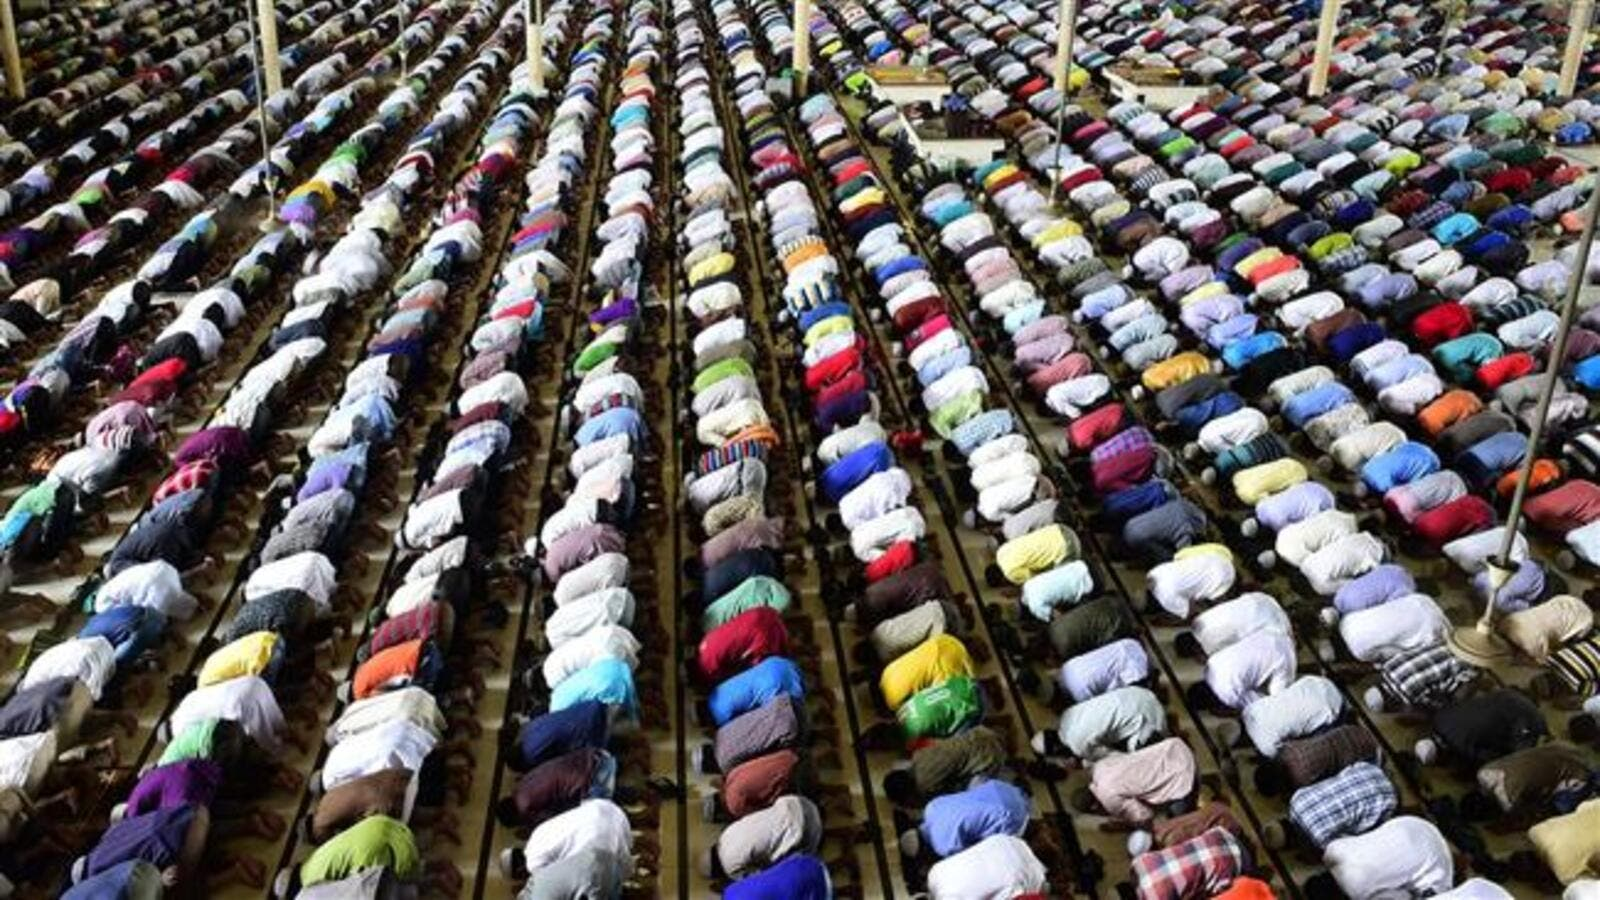 Bangladeshi Muslims offer Eid prayers at the start of the Eid al-Fitr holiday marking the end of Ramadan in Dhaka on July 18, 2015. (AFP/File)